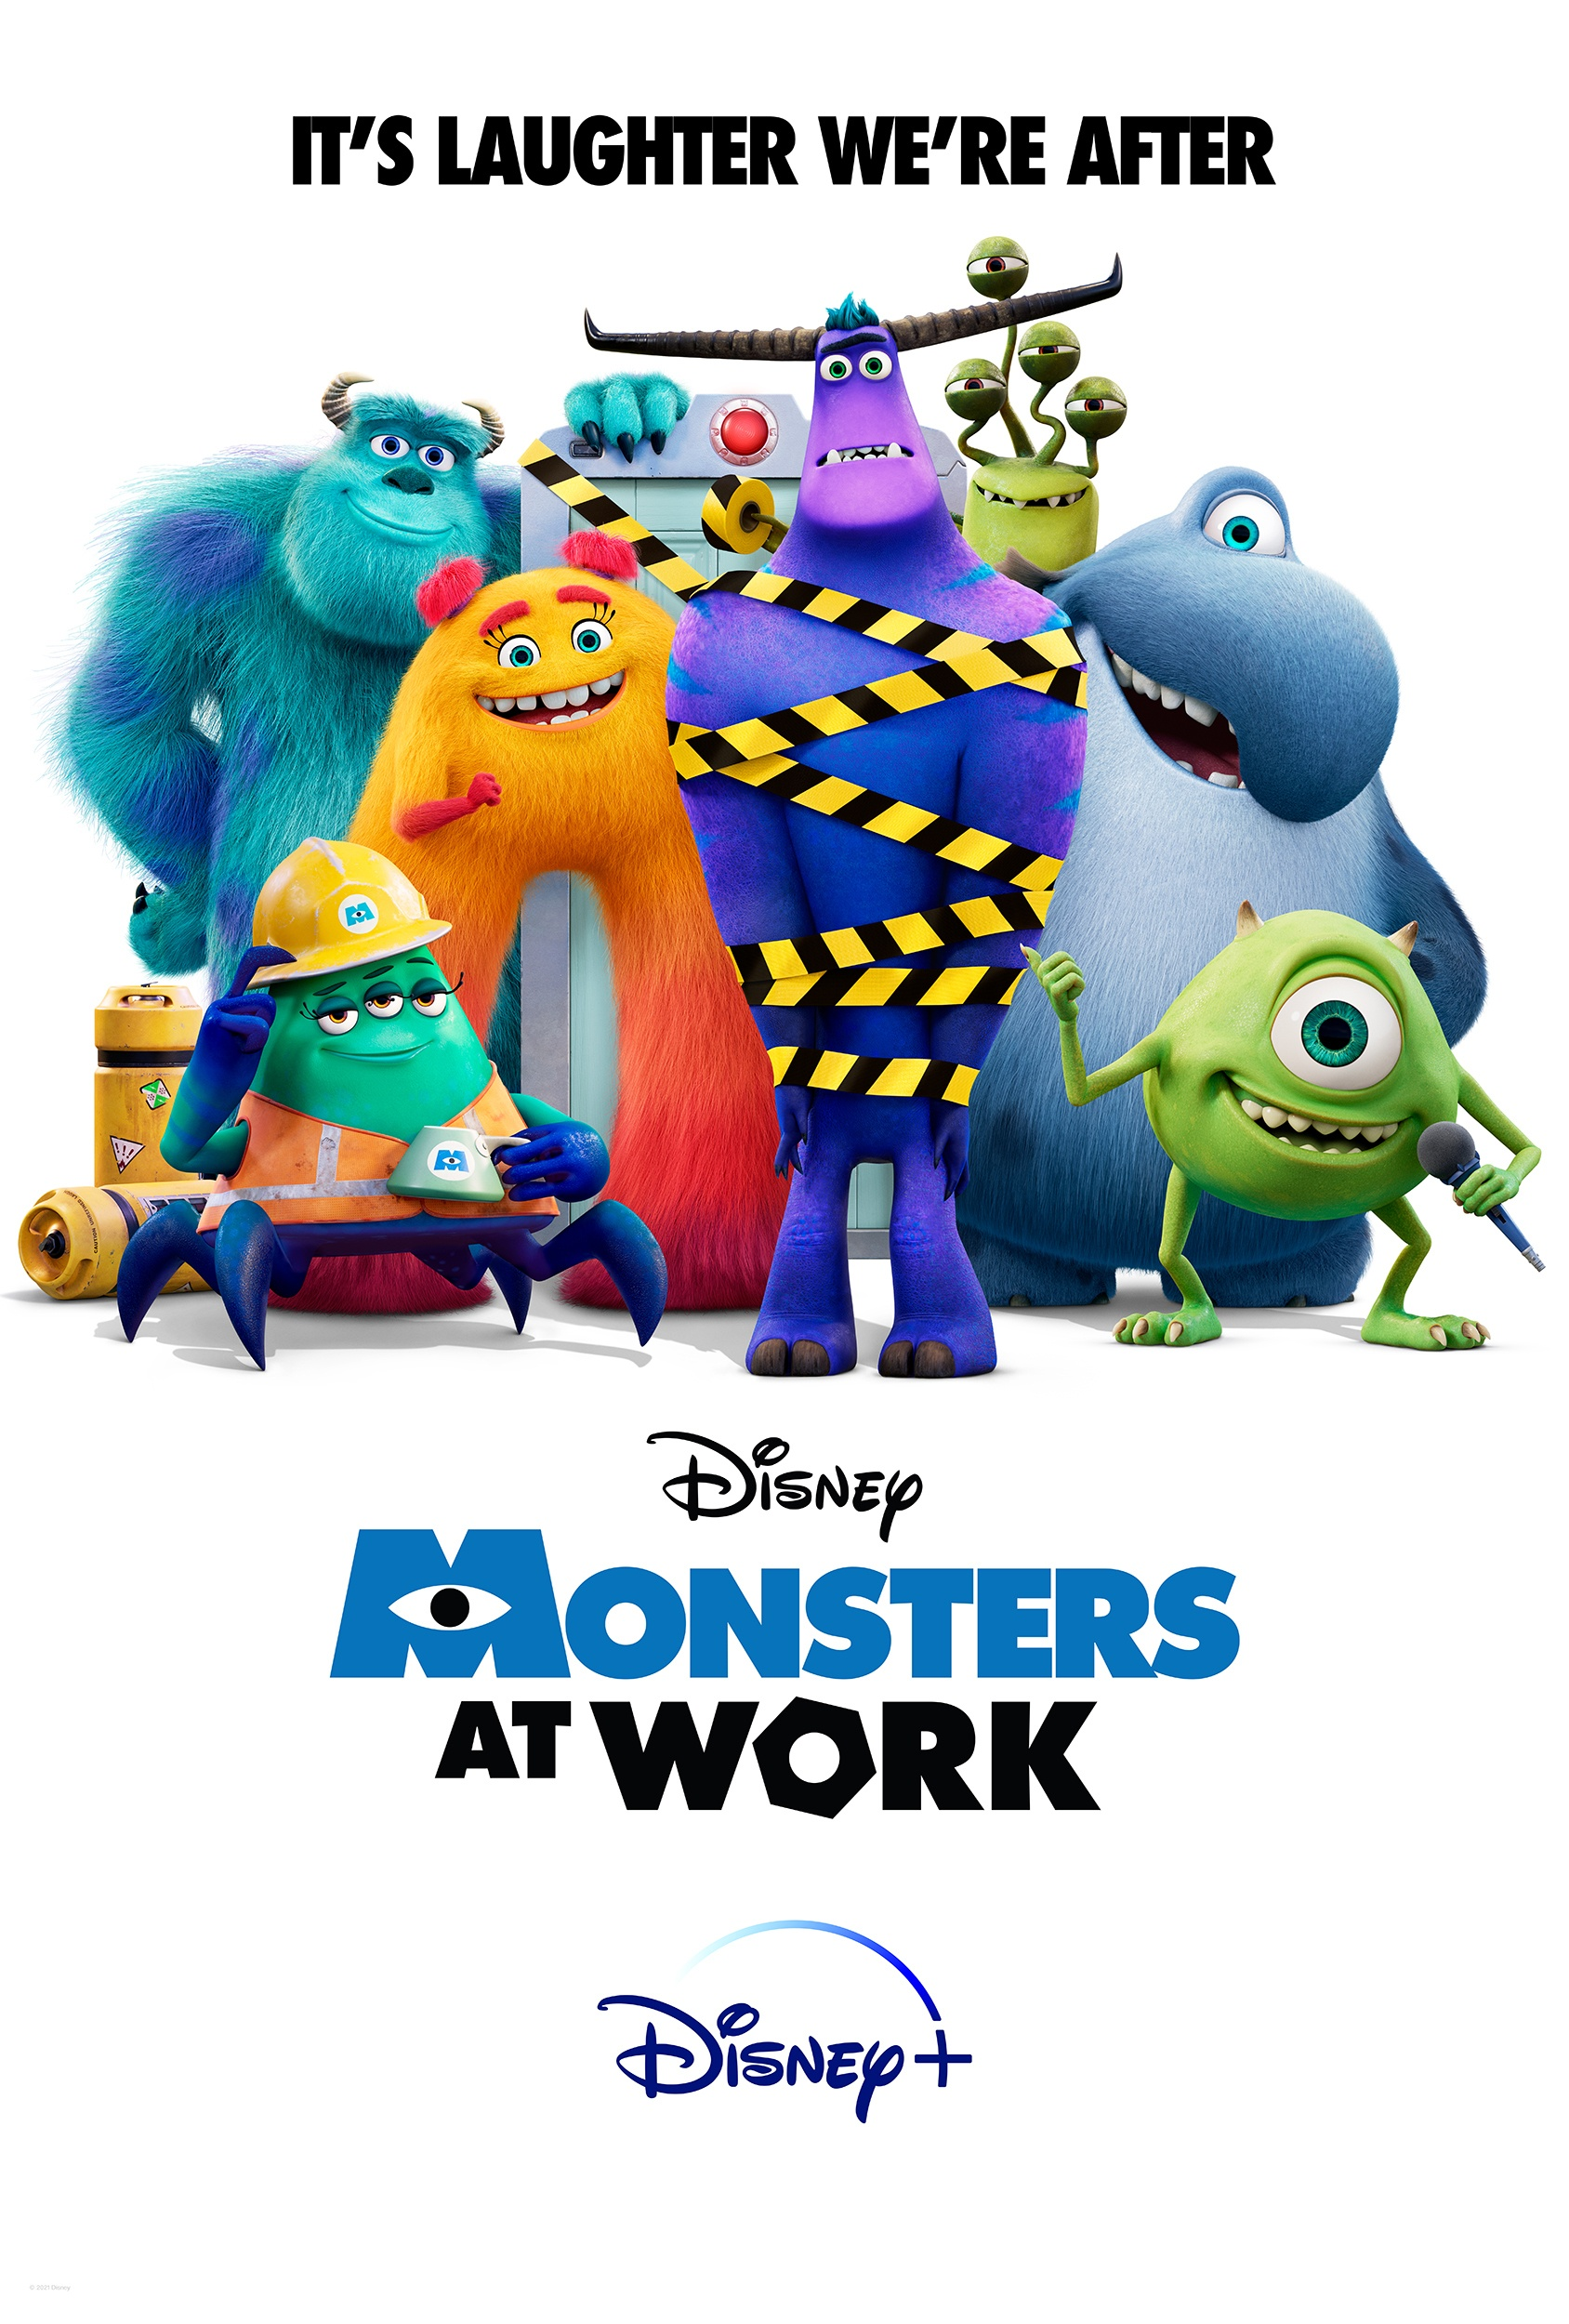 """All Episodes Of The Disney+ Original Series """"Monsters At Work"""" Now Streaming"""